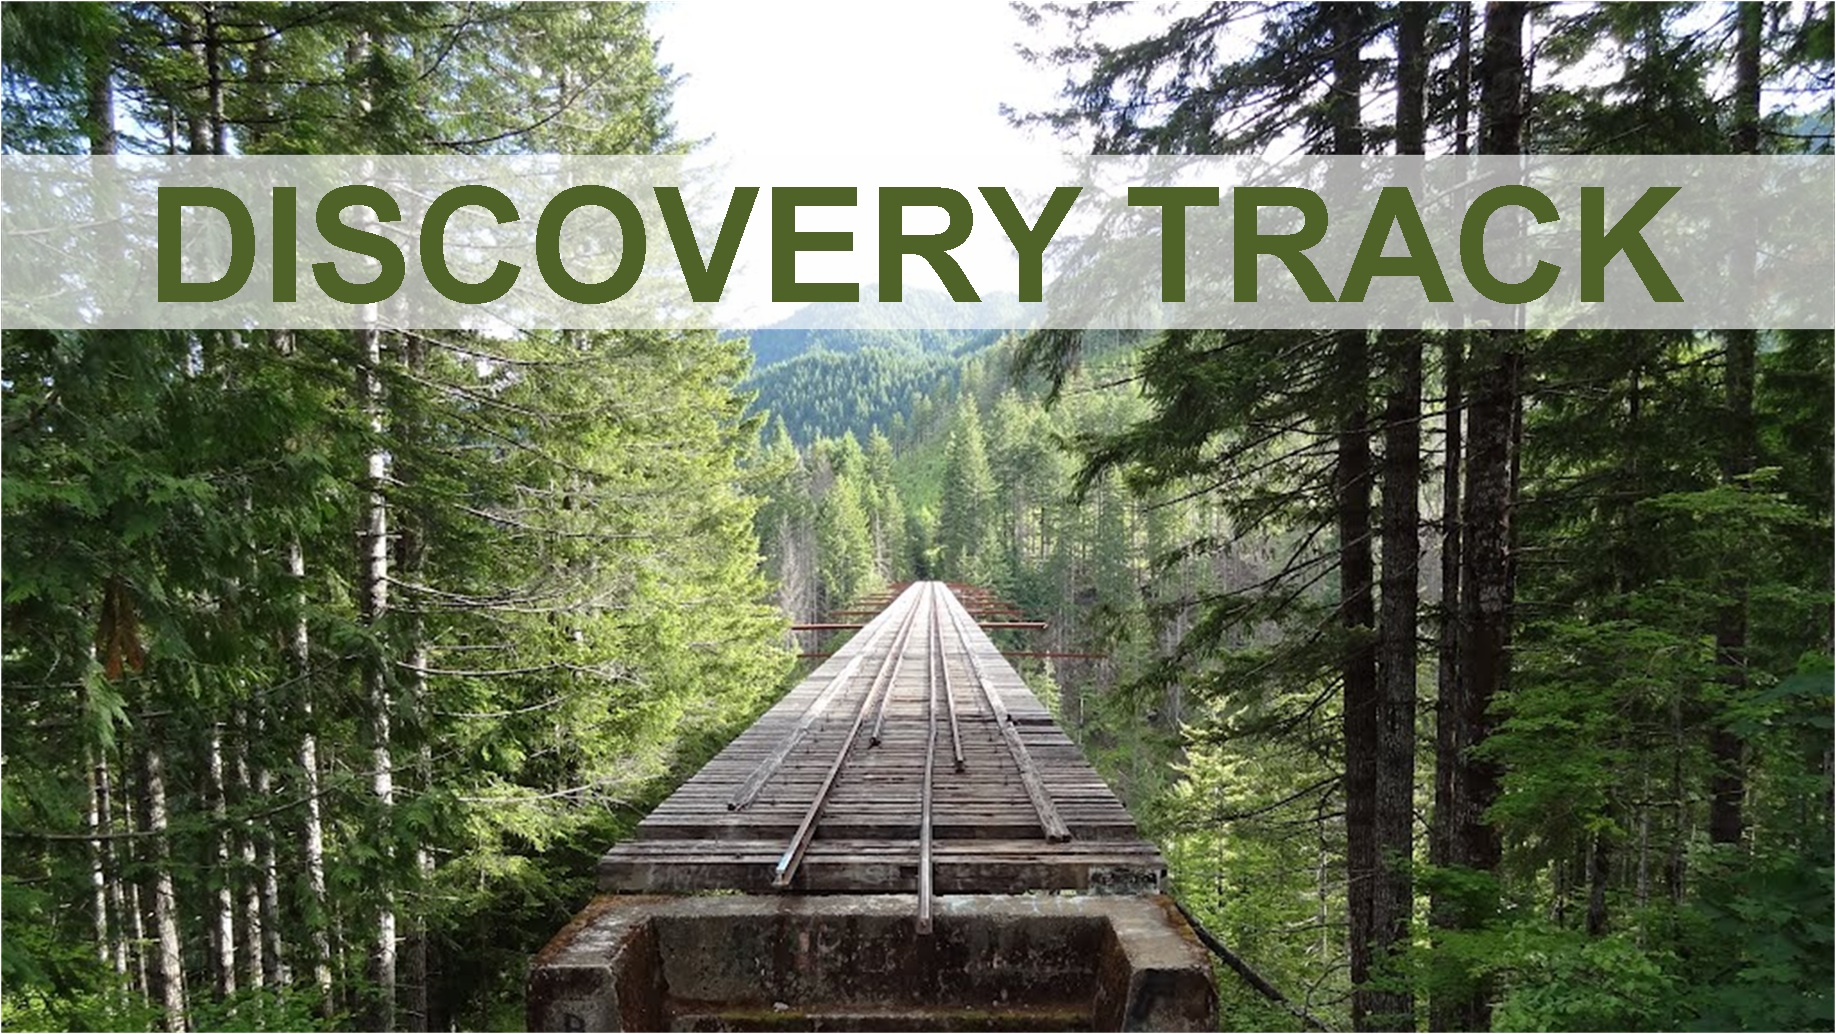 Discovery track